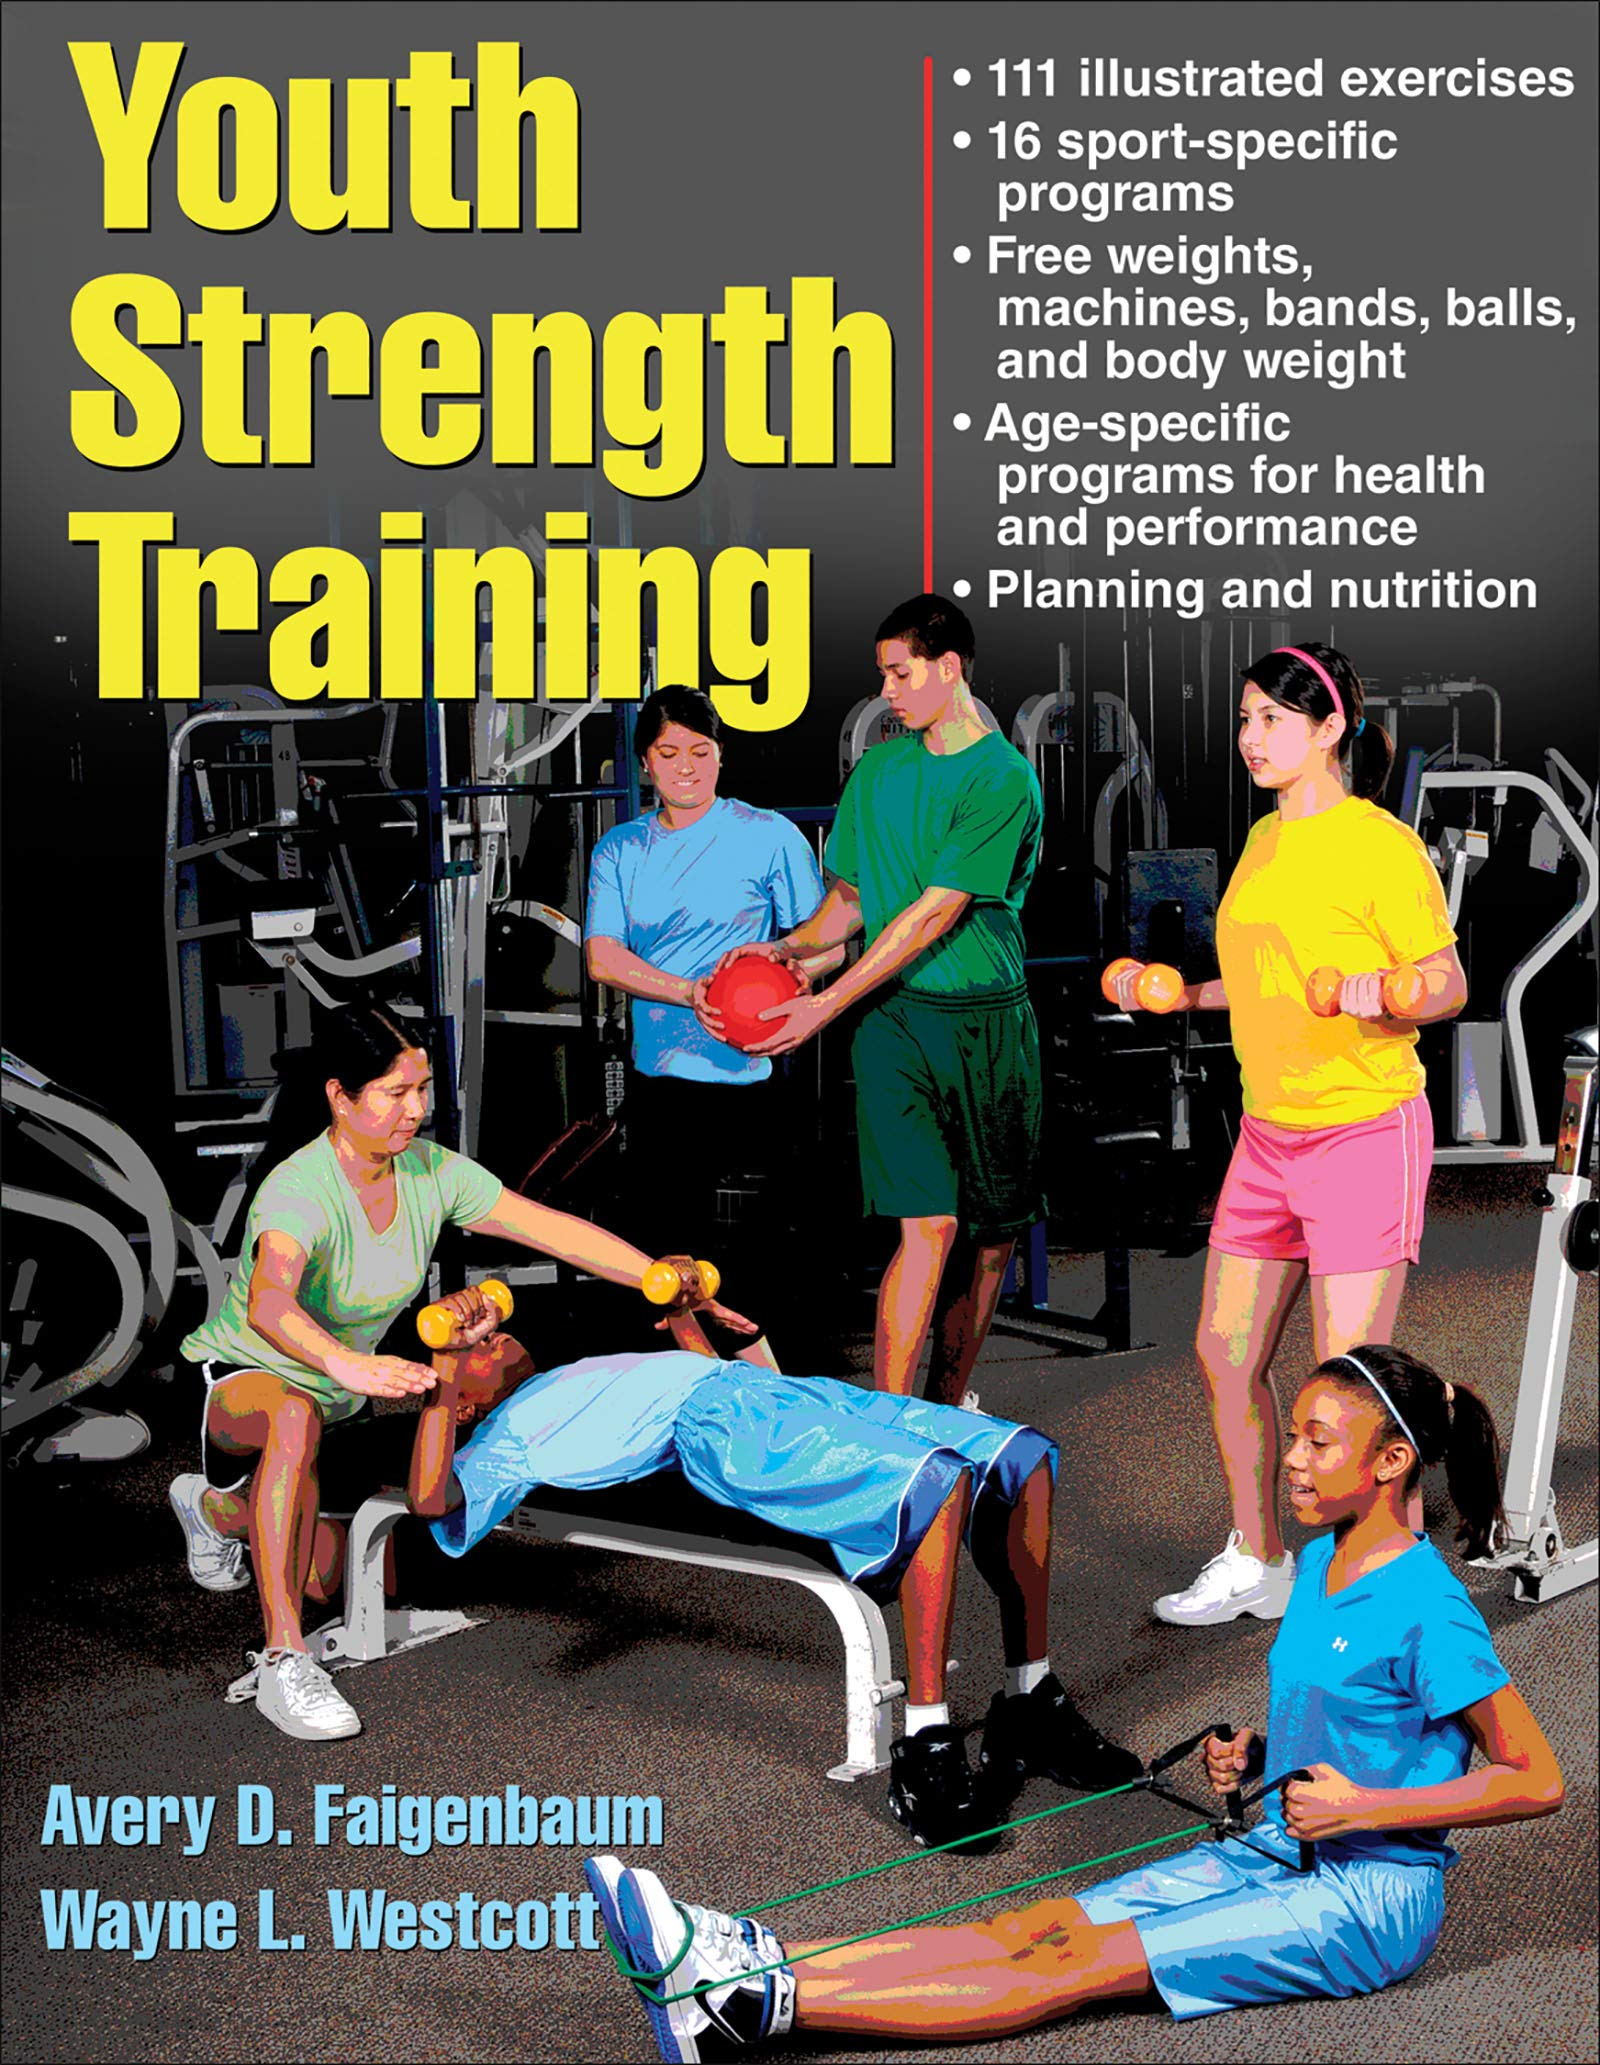 Image OfYouth Strength Training: Programs For Health, Fitness, And Sport (Strength & Power For Young Athlete)